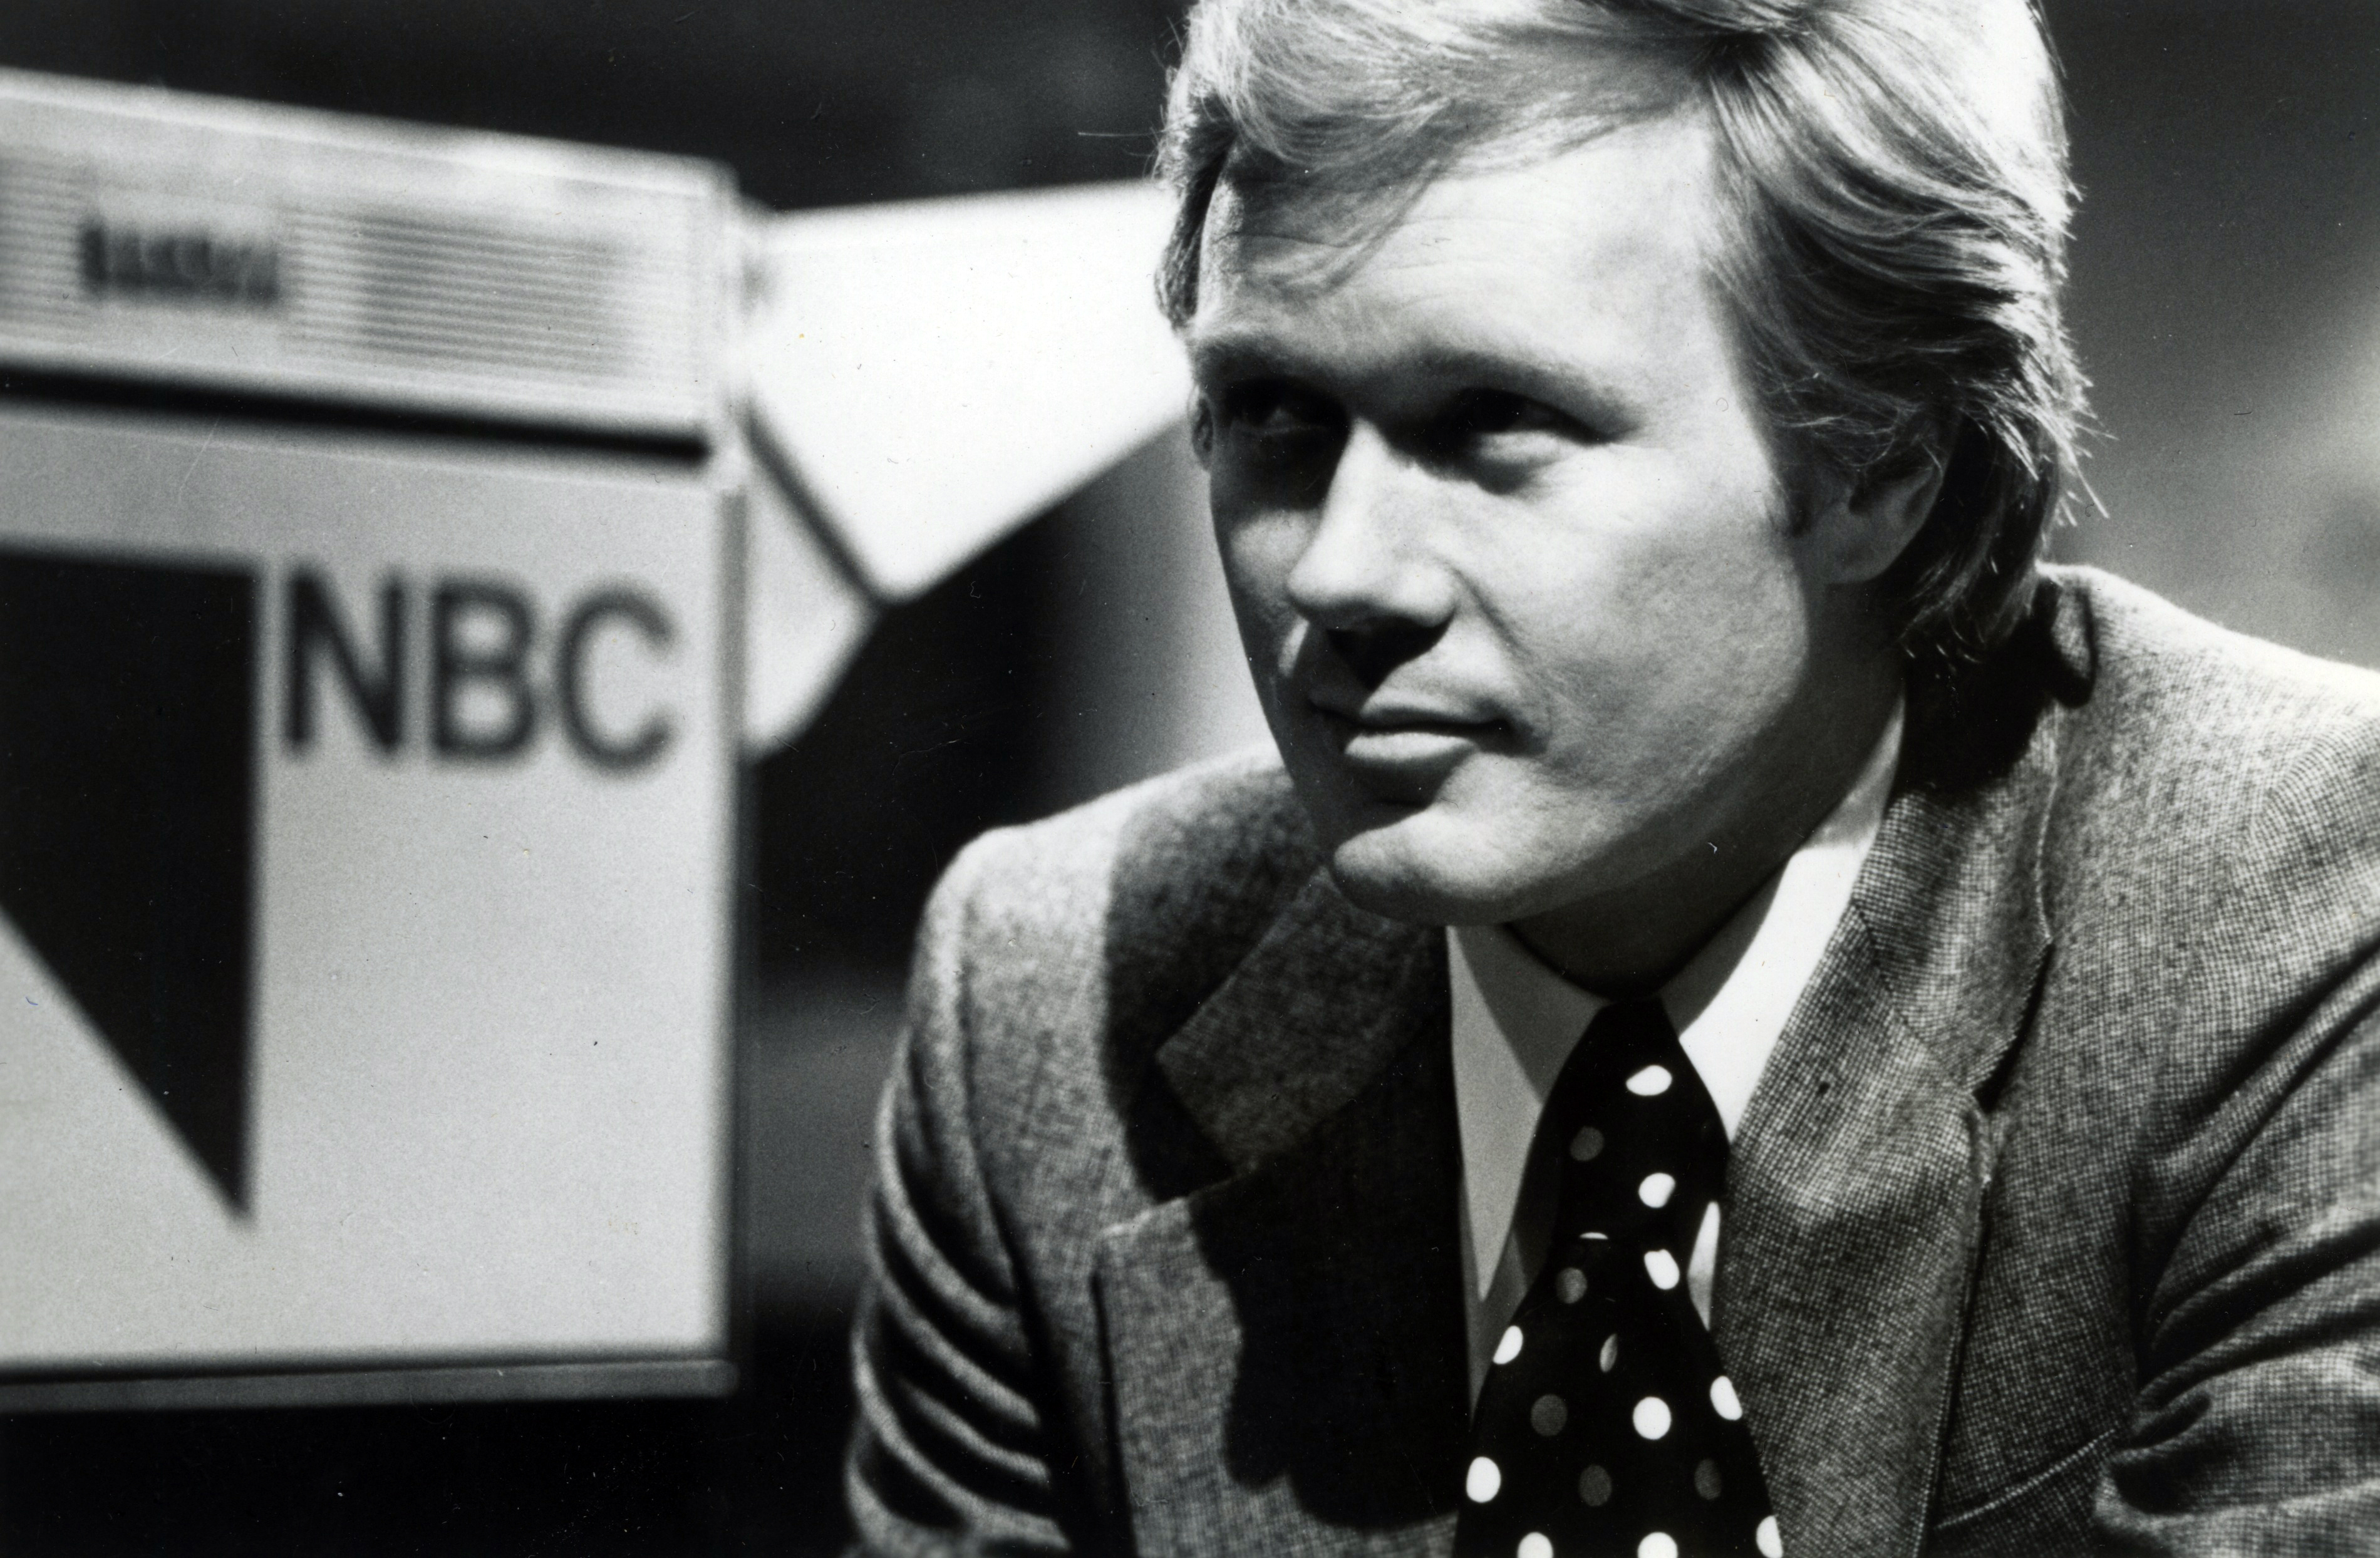 Scarborough in his early New York City days at WNBC, 1978.